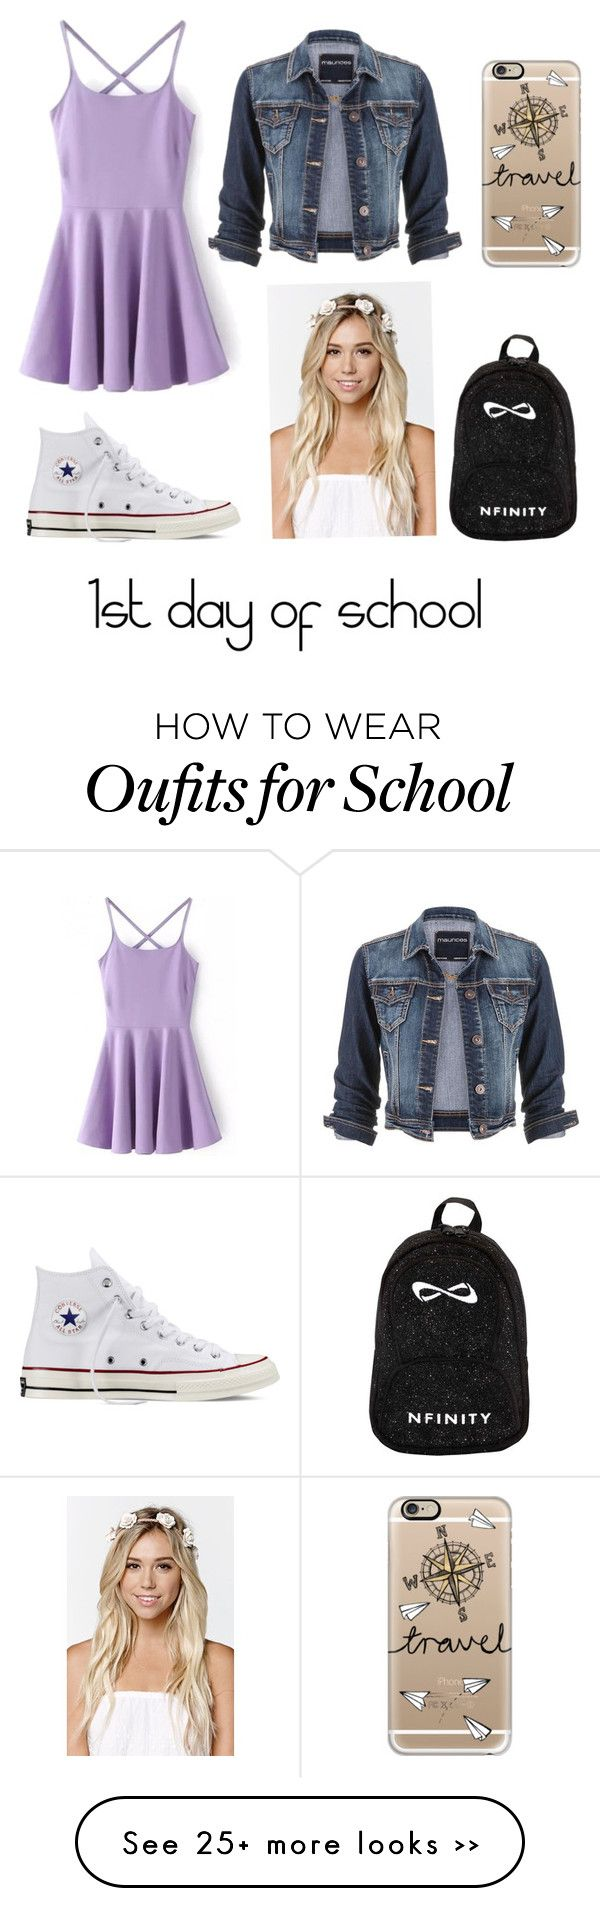 """""""1st day of school"""" by fashionpassion2020 on Polyvore"""